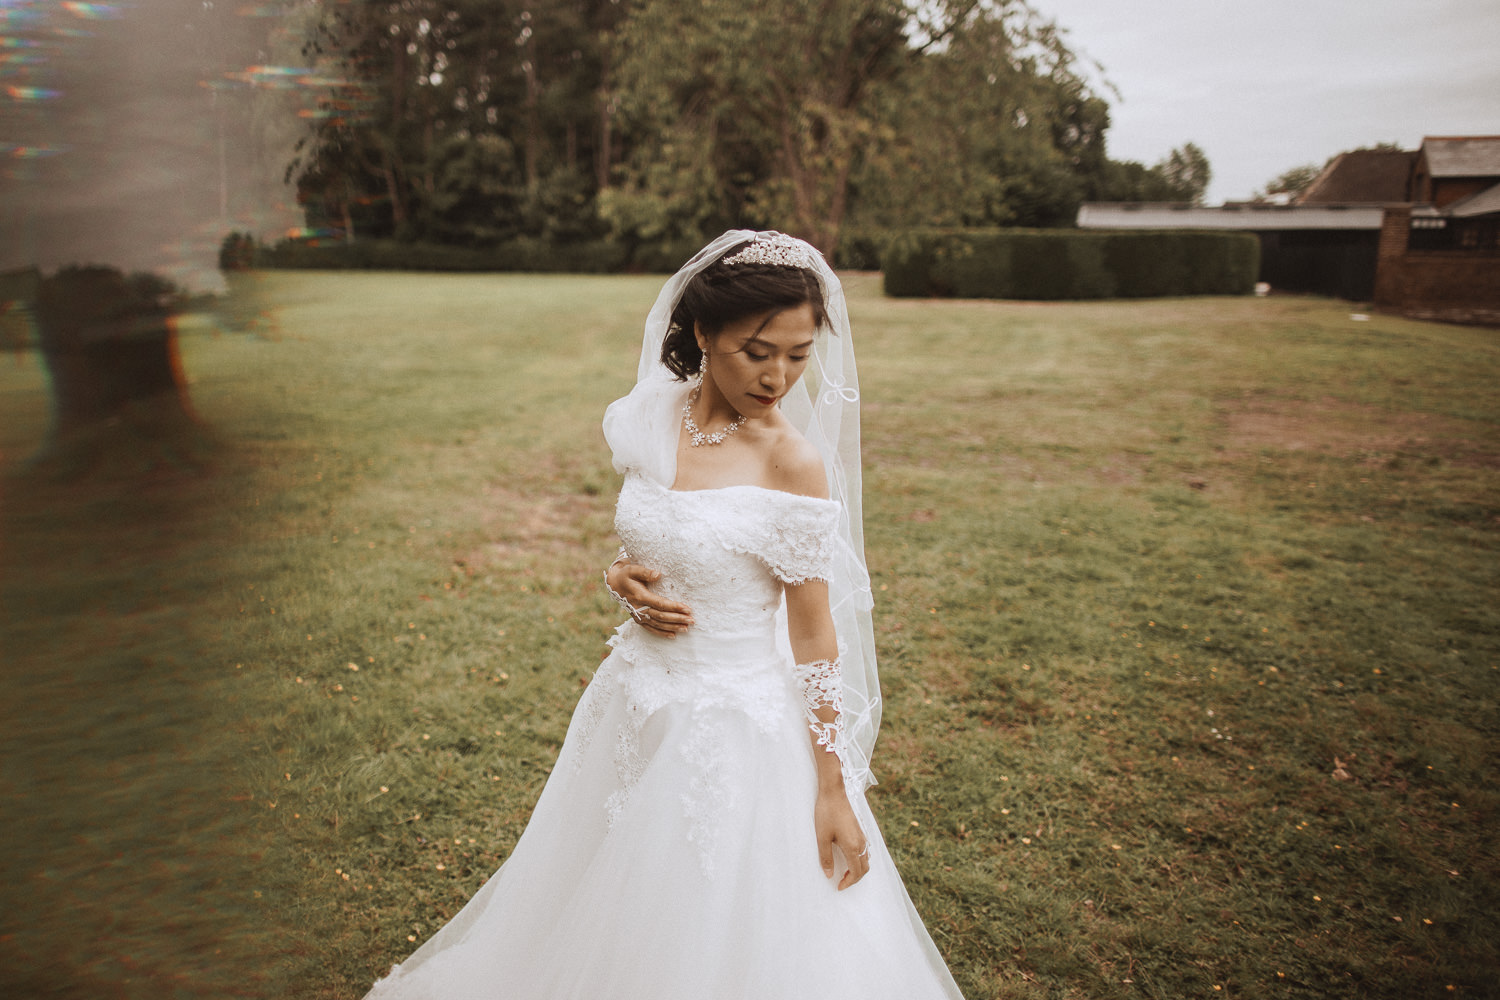 The beautiful Ting on her wedding day at Inglewood Manor, Cheshire